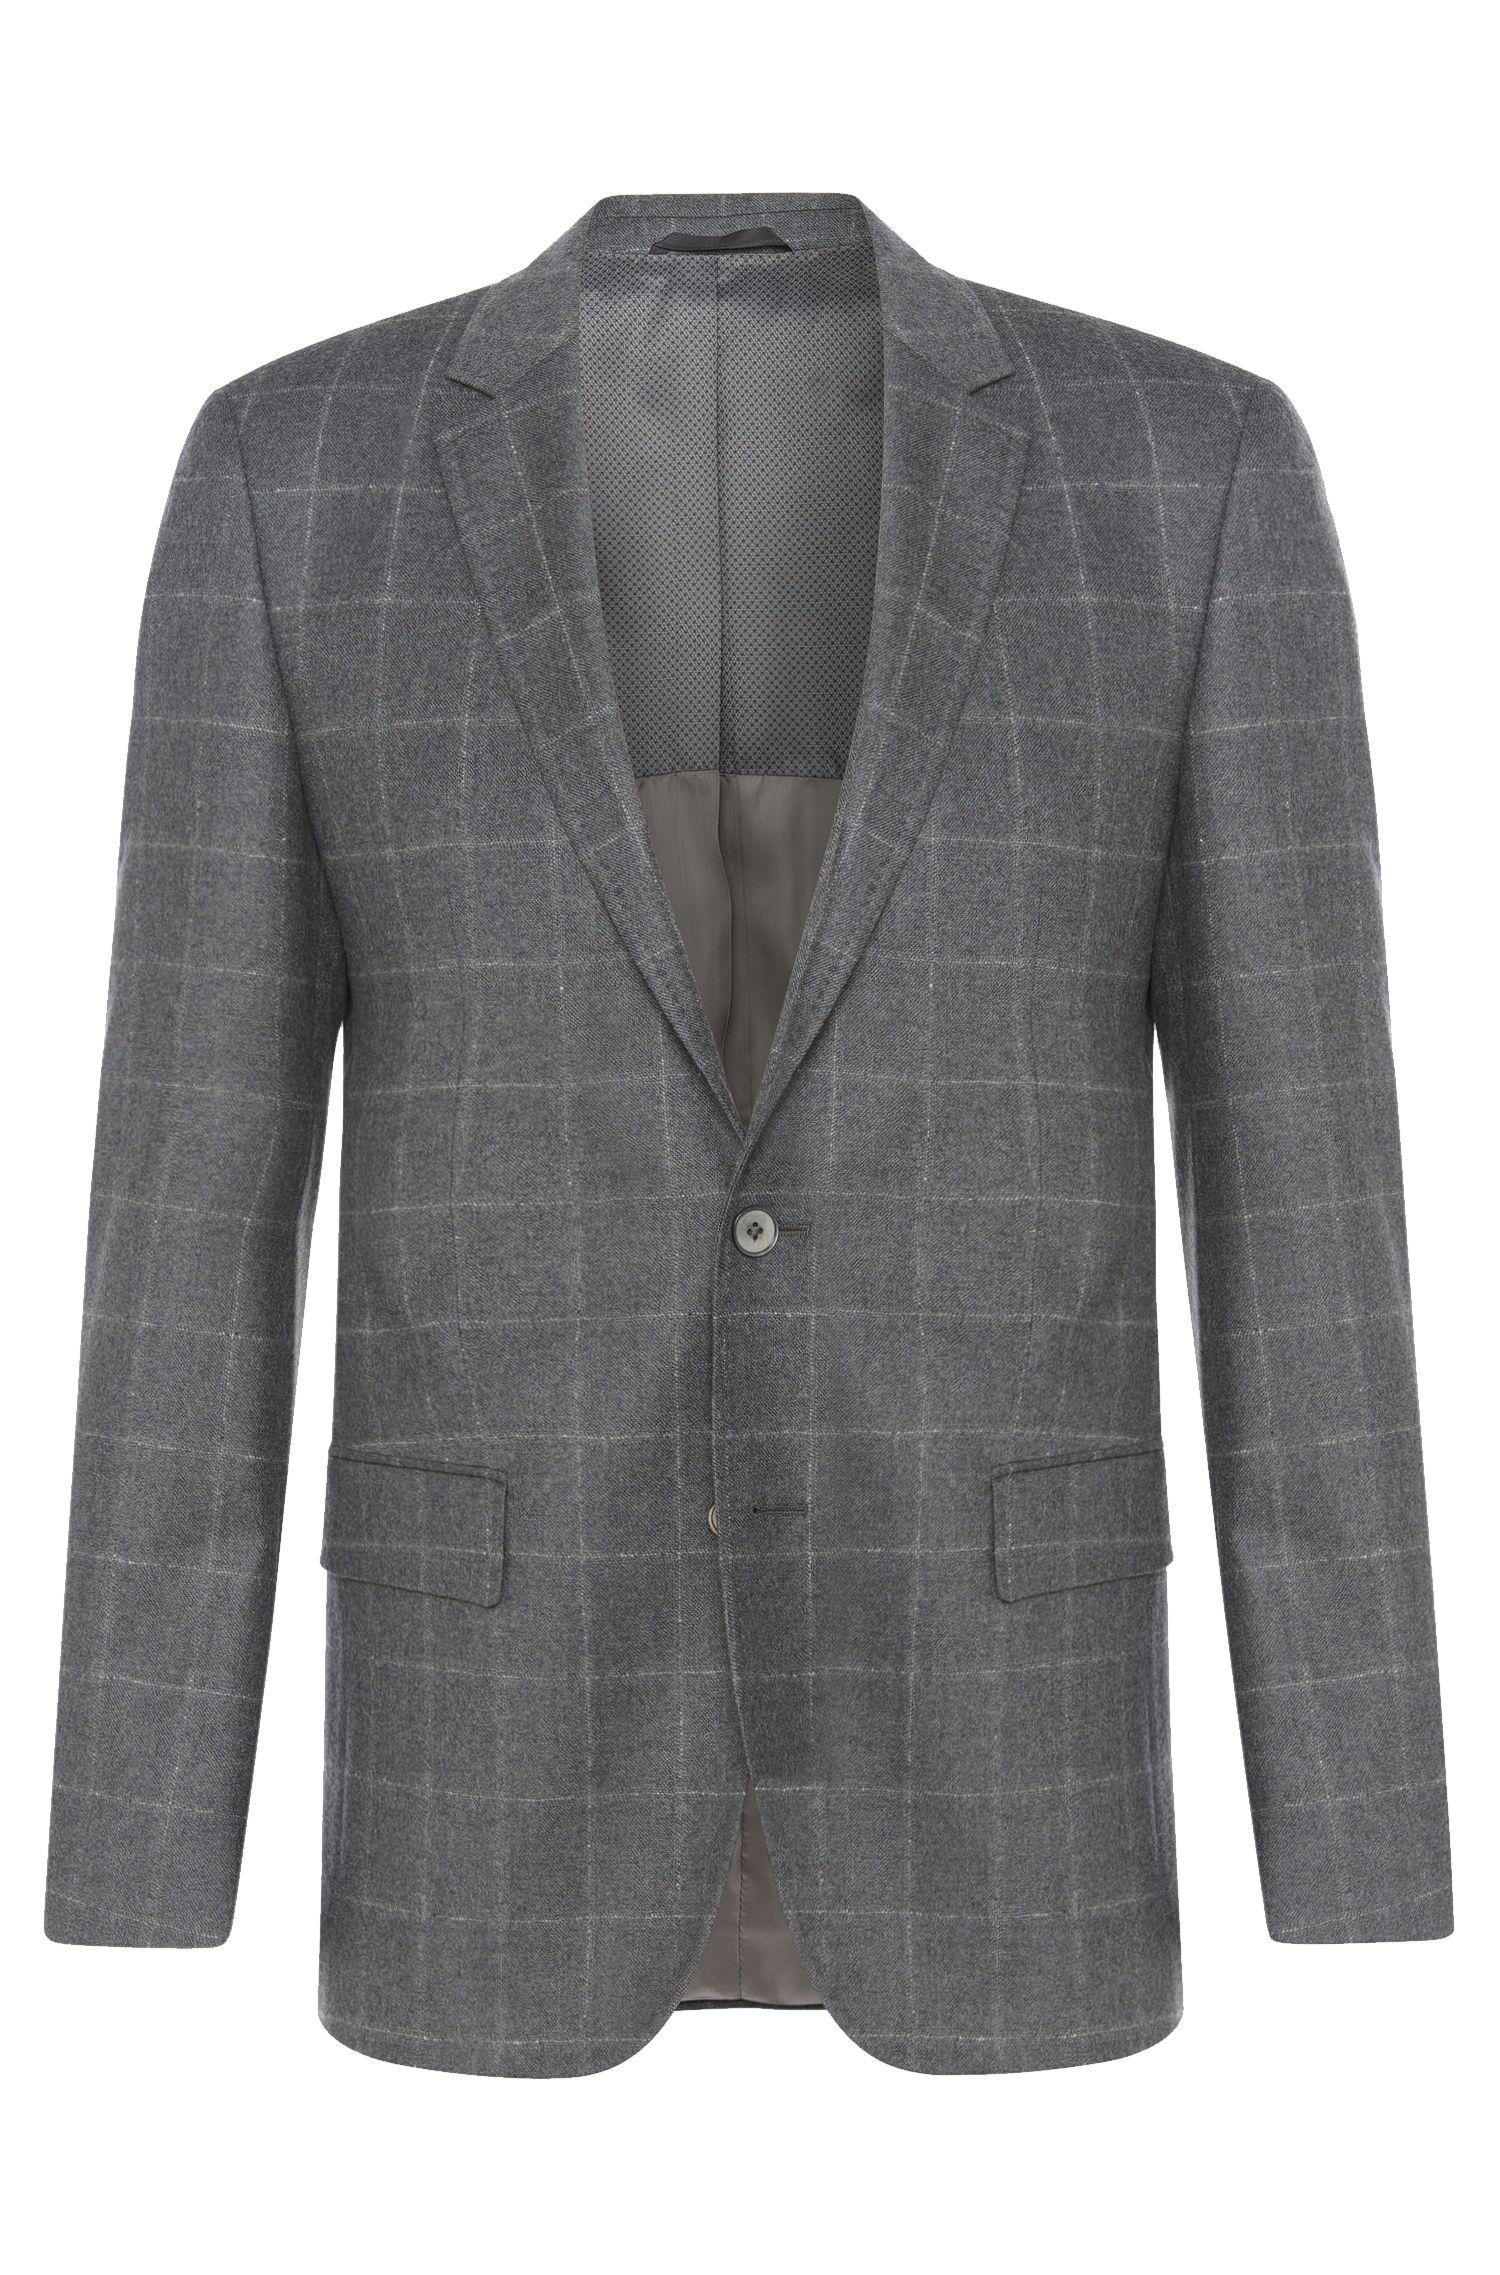 'Hutsons' | Slim Fit, Italian Virgin Wool Sport Coat